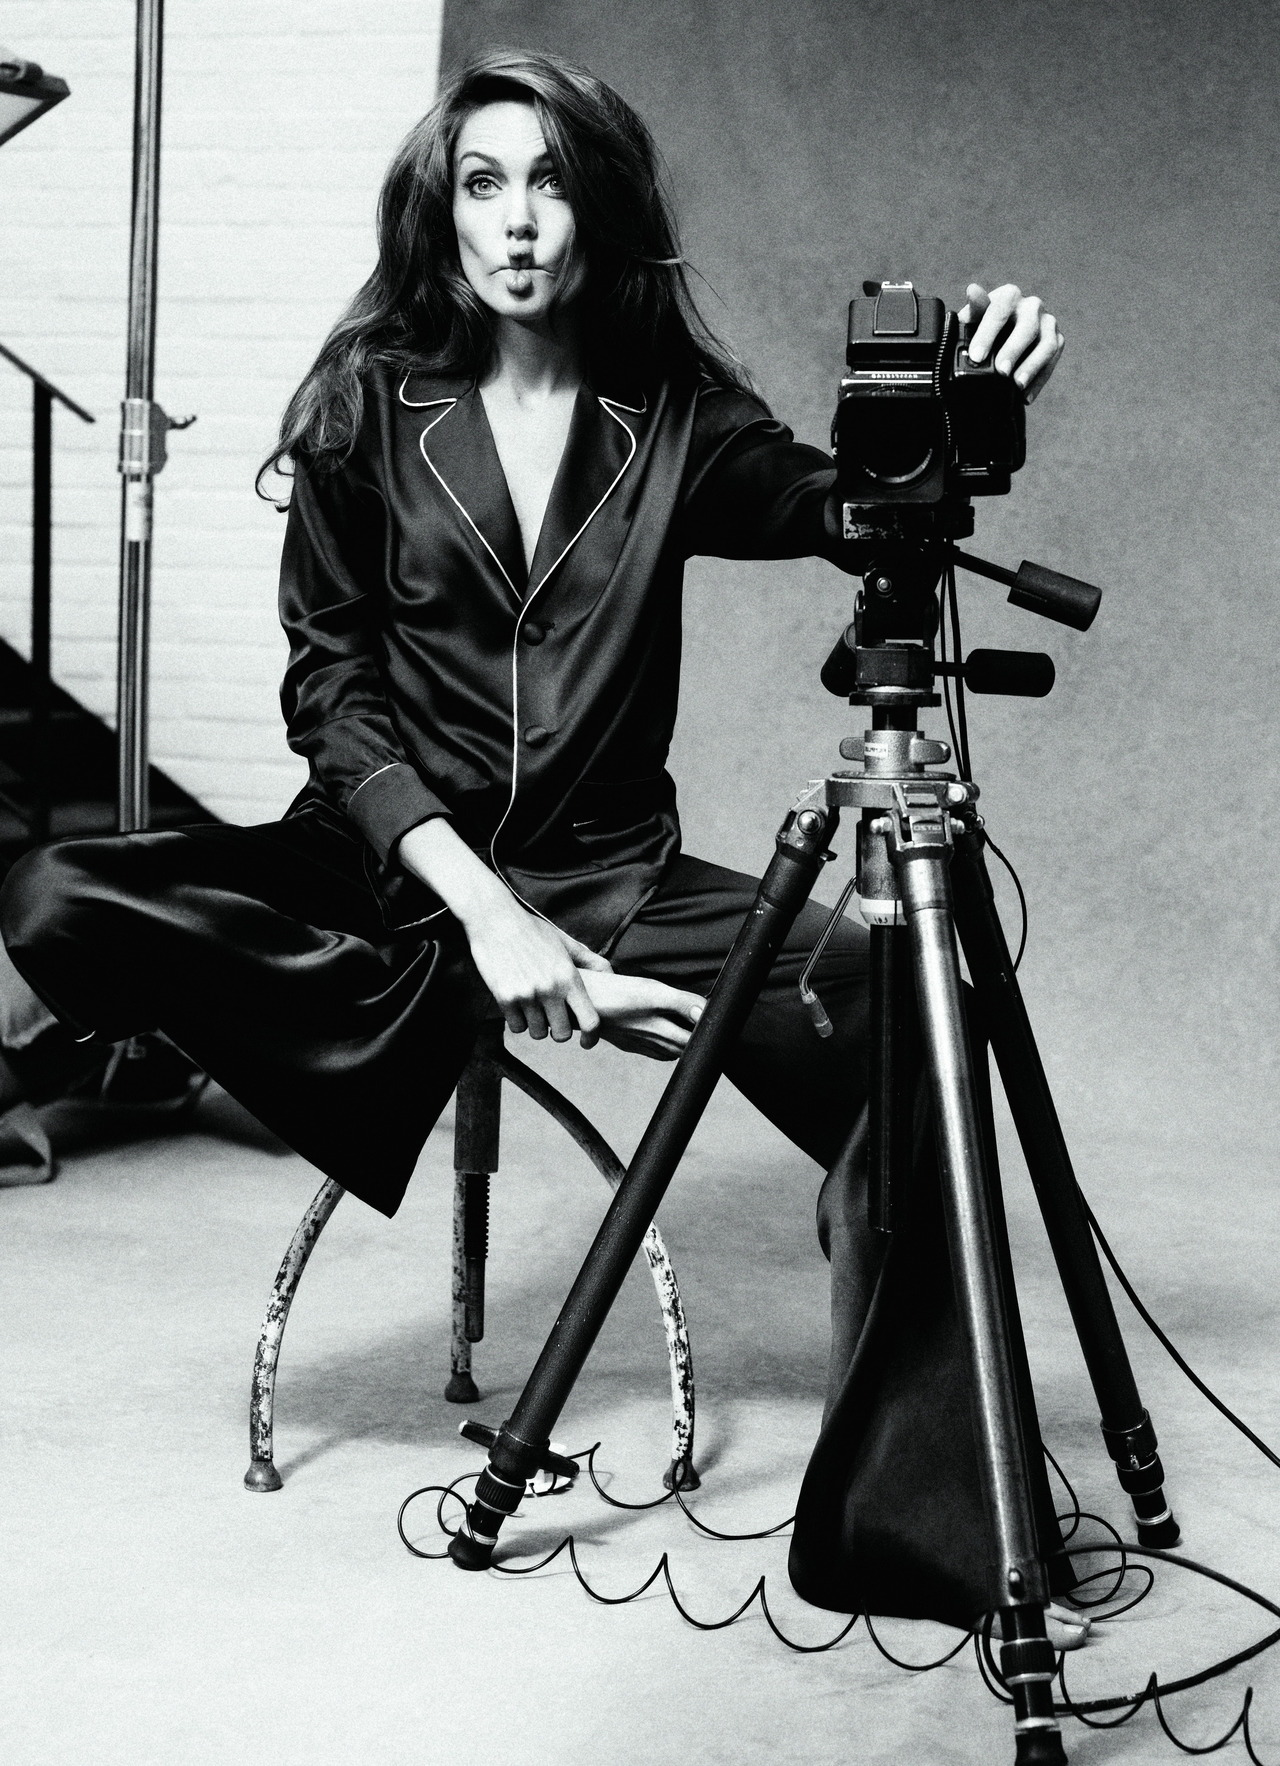 Angelina Jolie photographed by Alexei Hay for Marie Claire, January 2012